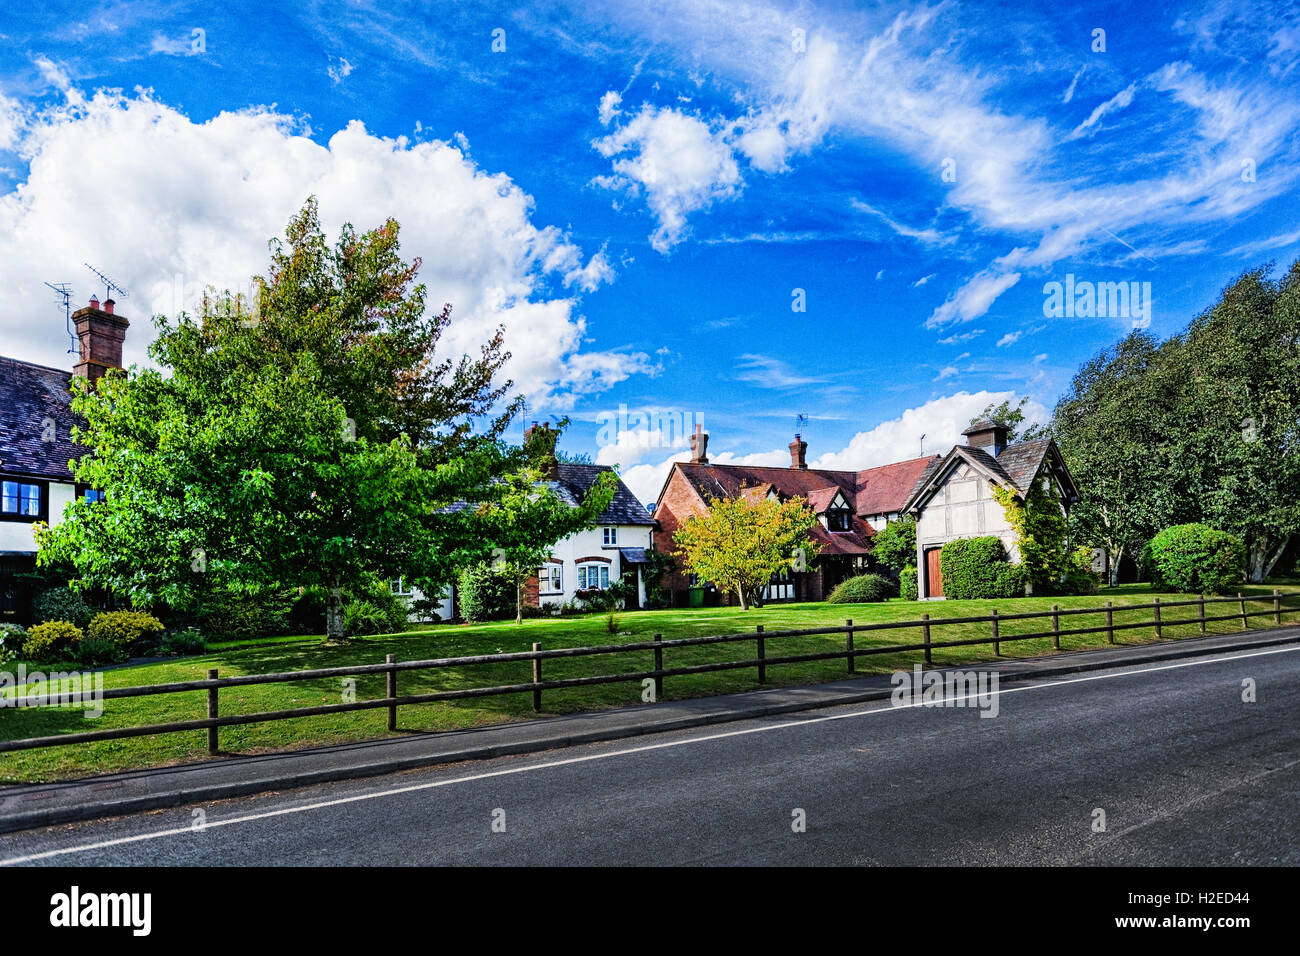 Old half timbered cottages punctuate the landscape of Eardisland, Herefordshire. - Stock Image